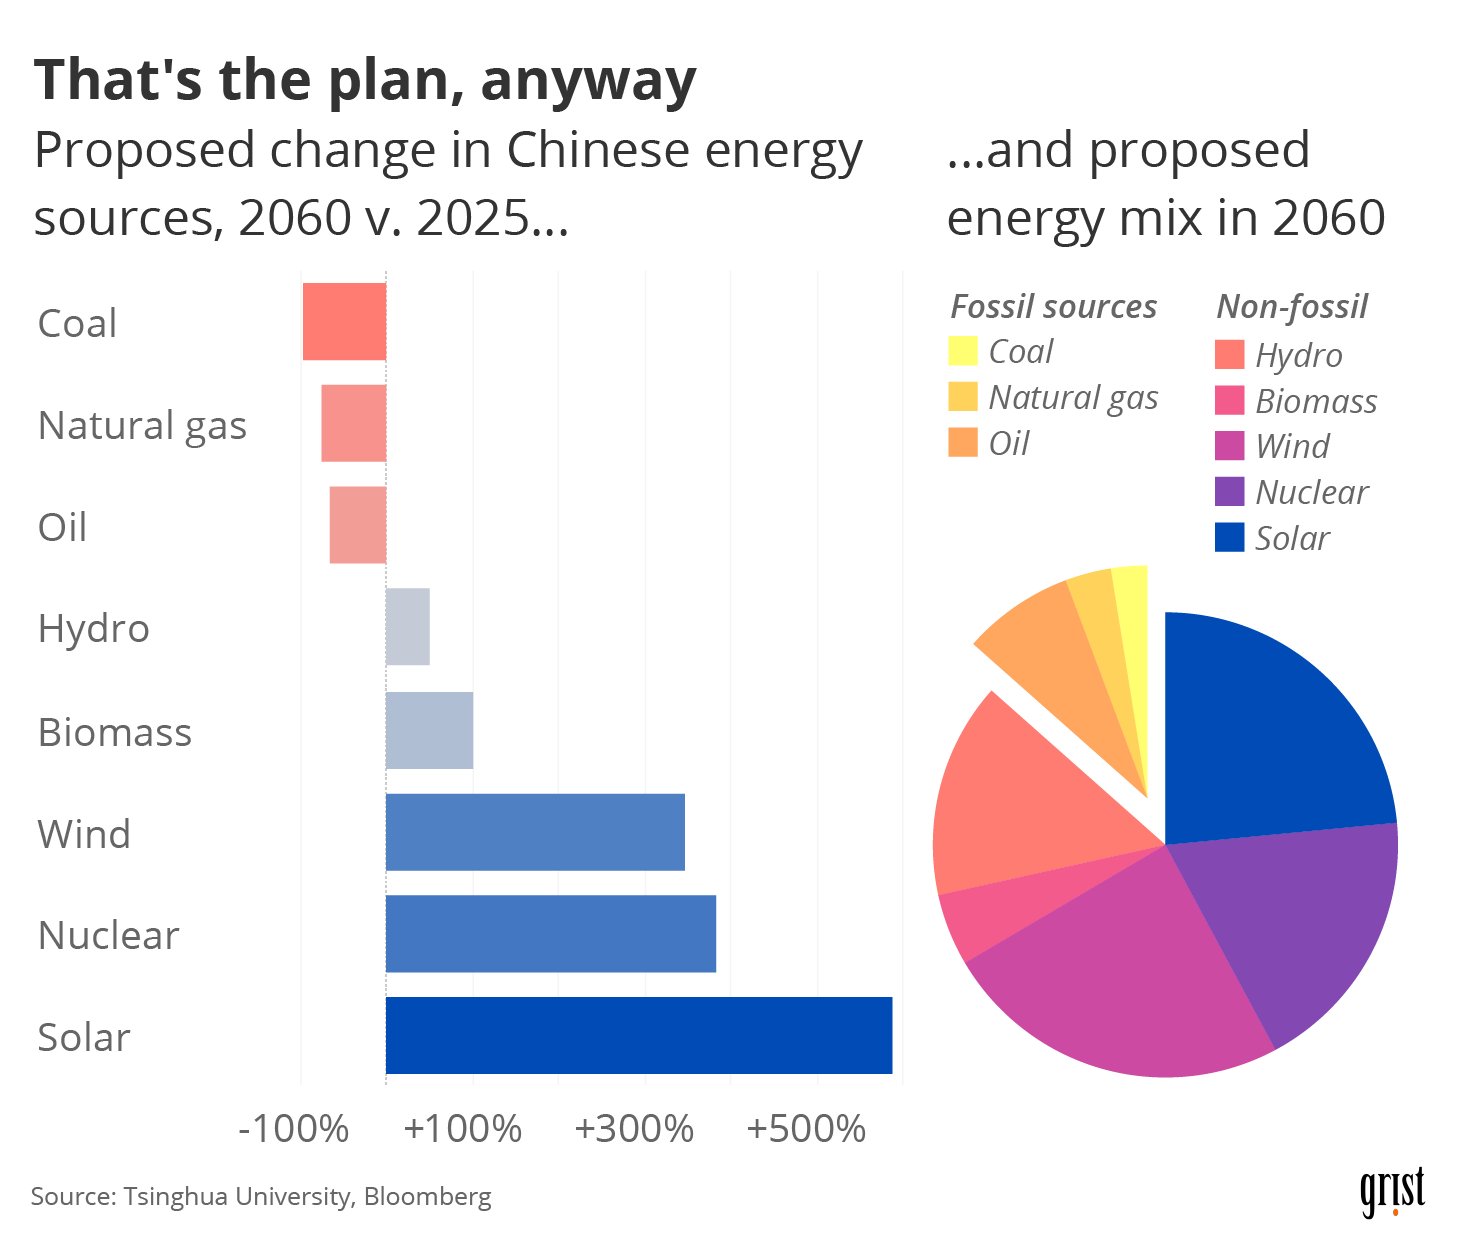 A bar chart showing the proposed change in Chinese energy sources, 2060 v. 2025. While coal, natural gas, and oil will fall, solar is projected to see a 600% increase. An accompanying pie chart shows fossil sources in 2060 taking up less than 25% of the total energy mix.